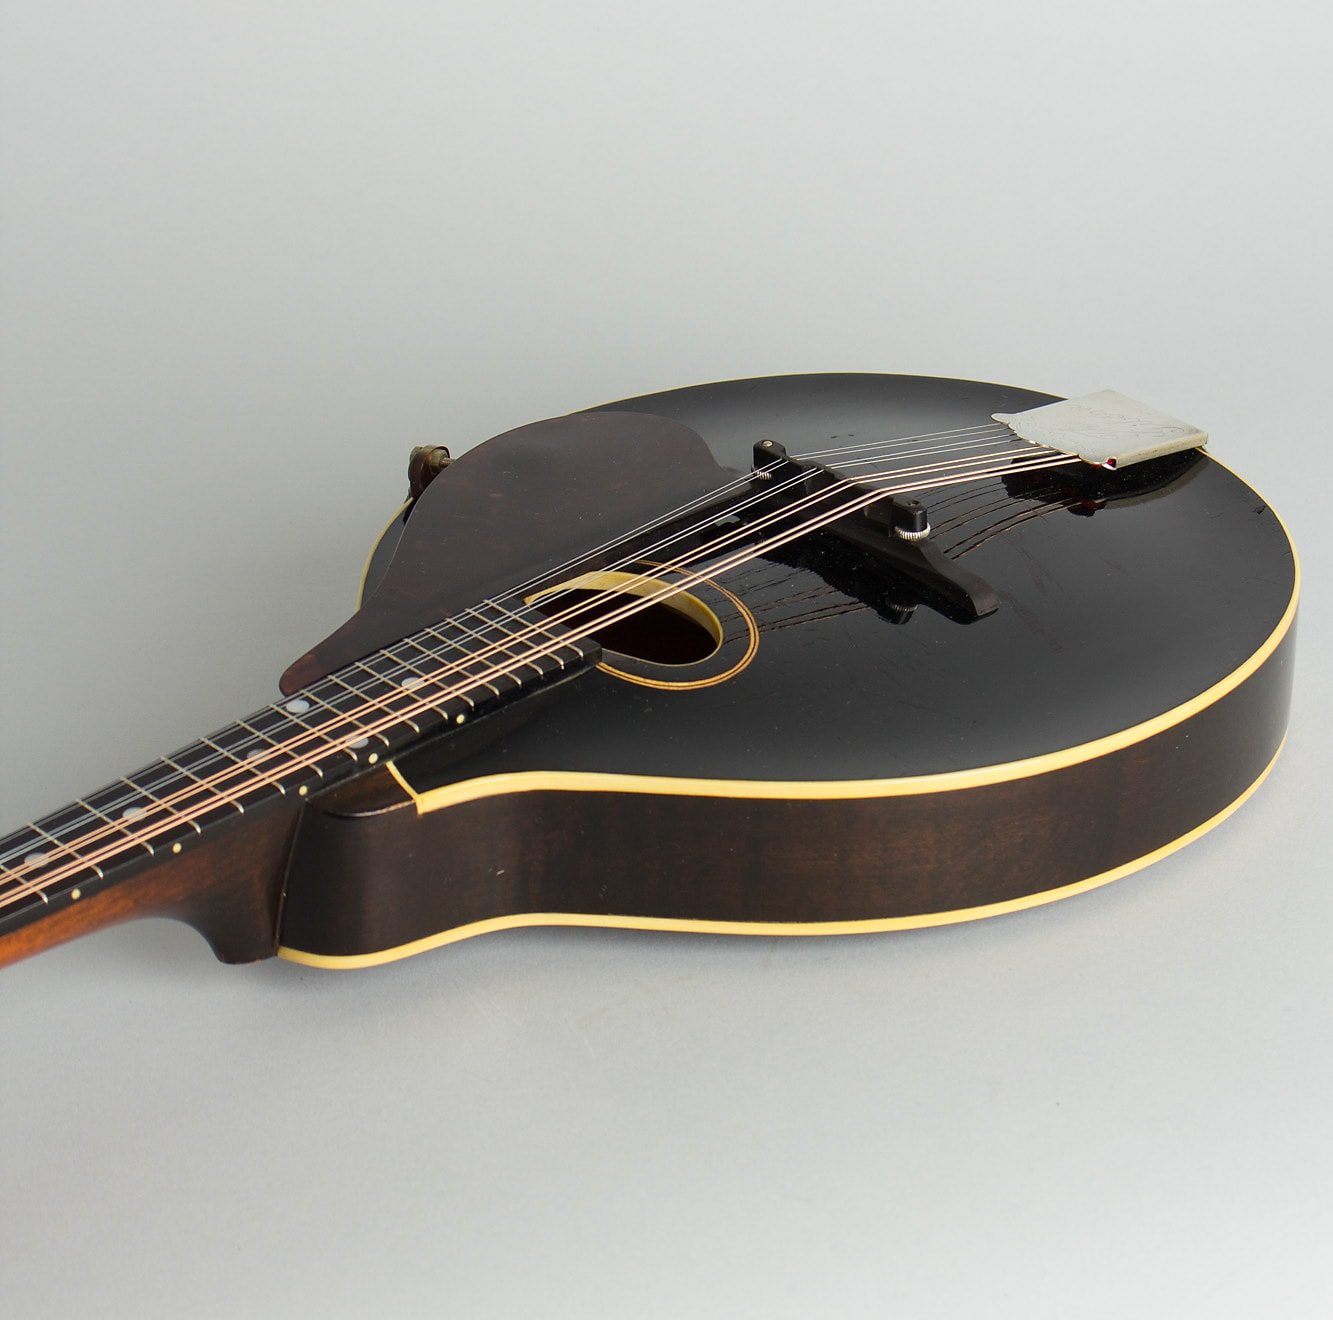 Gibson  Style A-1 Snakehead Carved Top Mandolin (1924), ser. #75720, original black hard shell case.